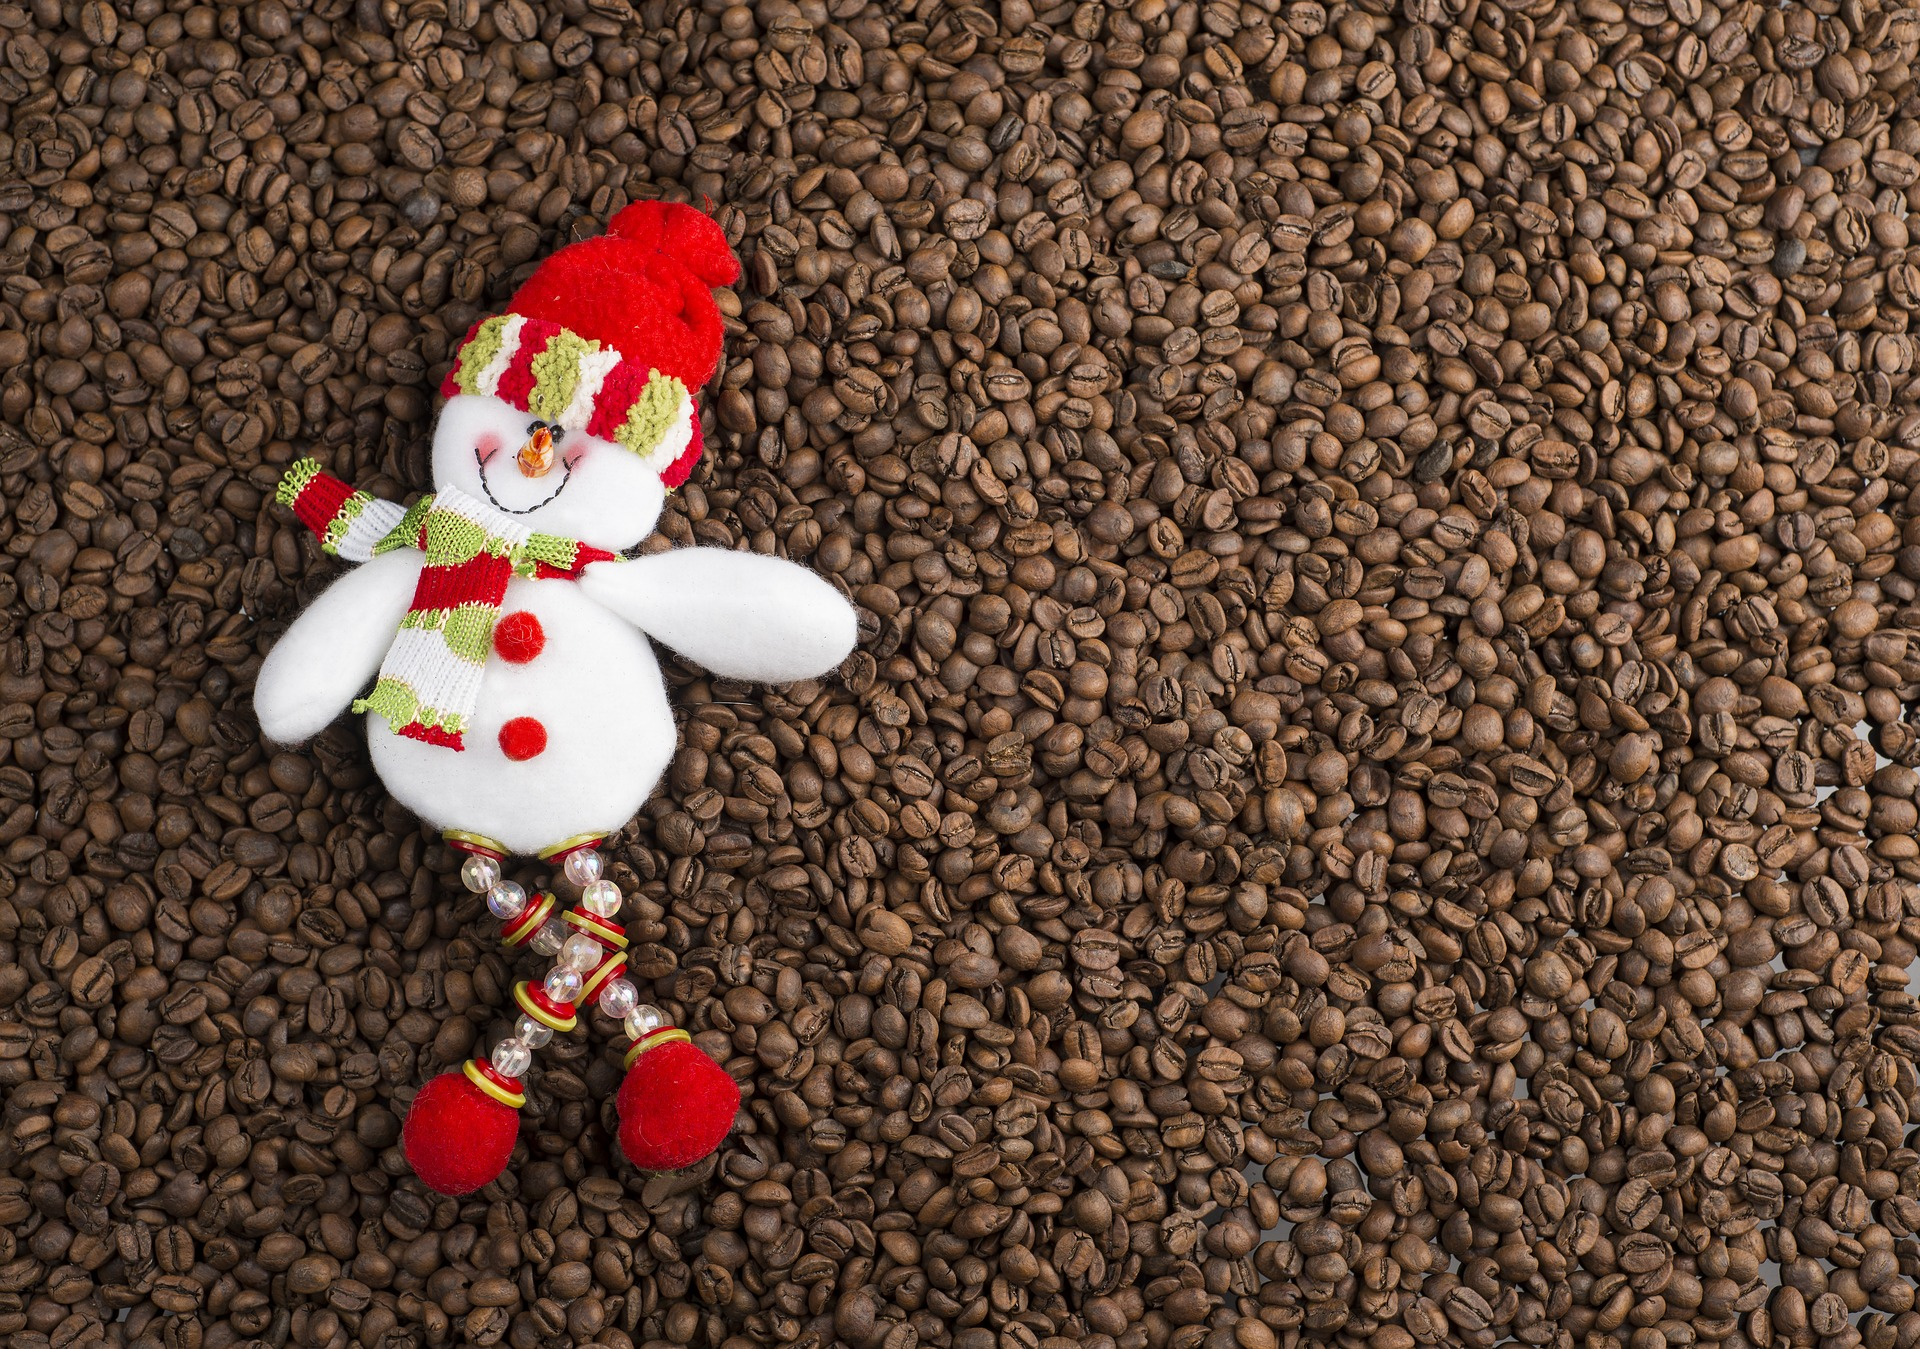 purchase coffee beans online